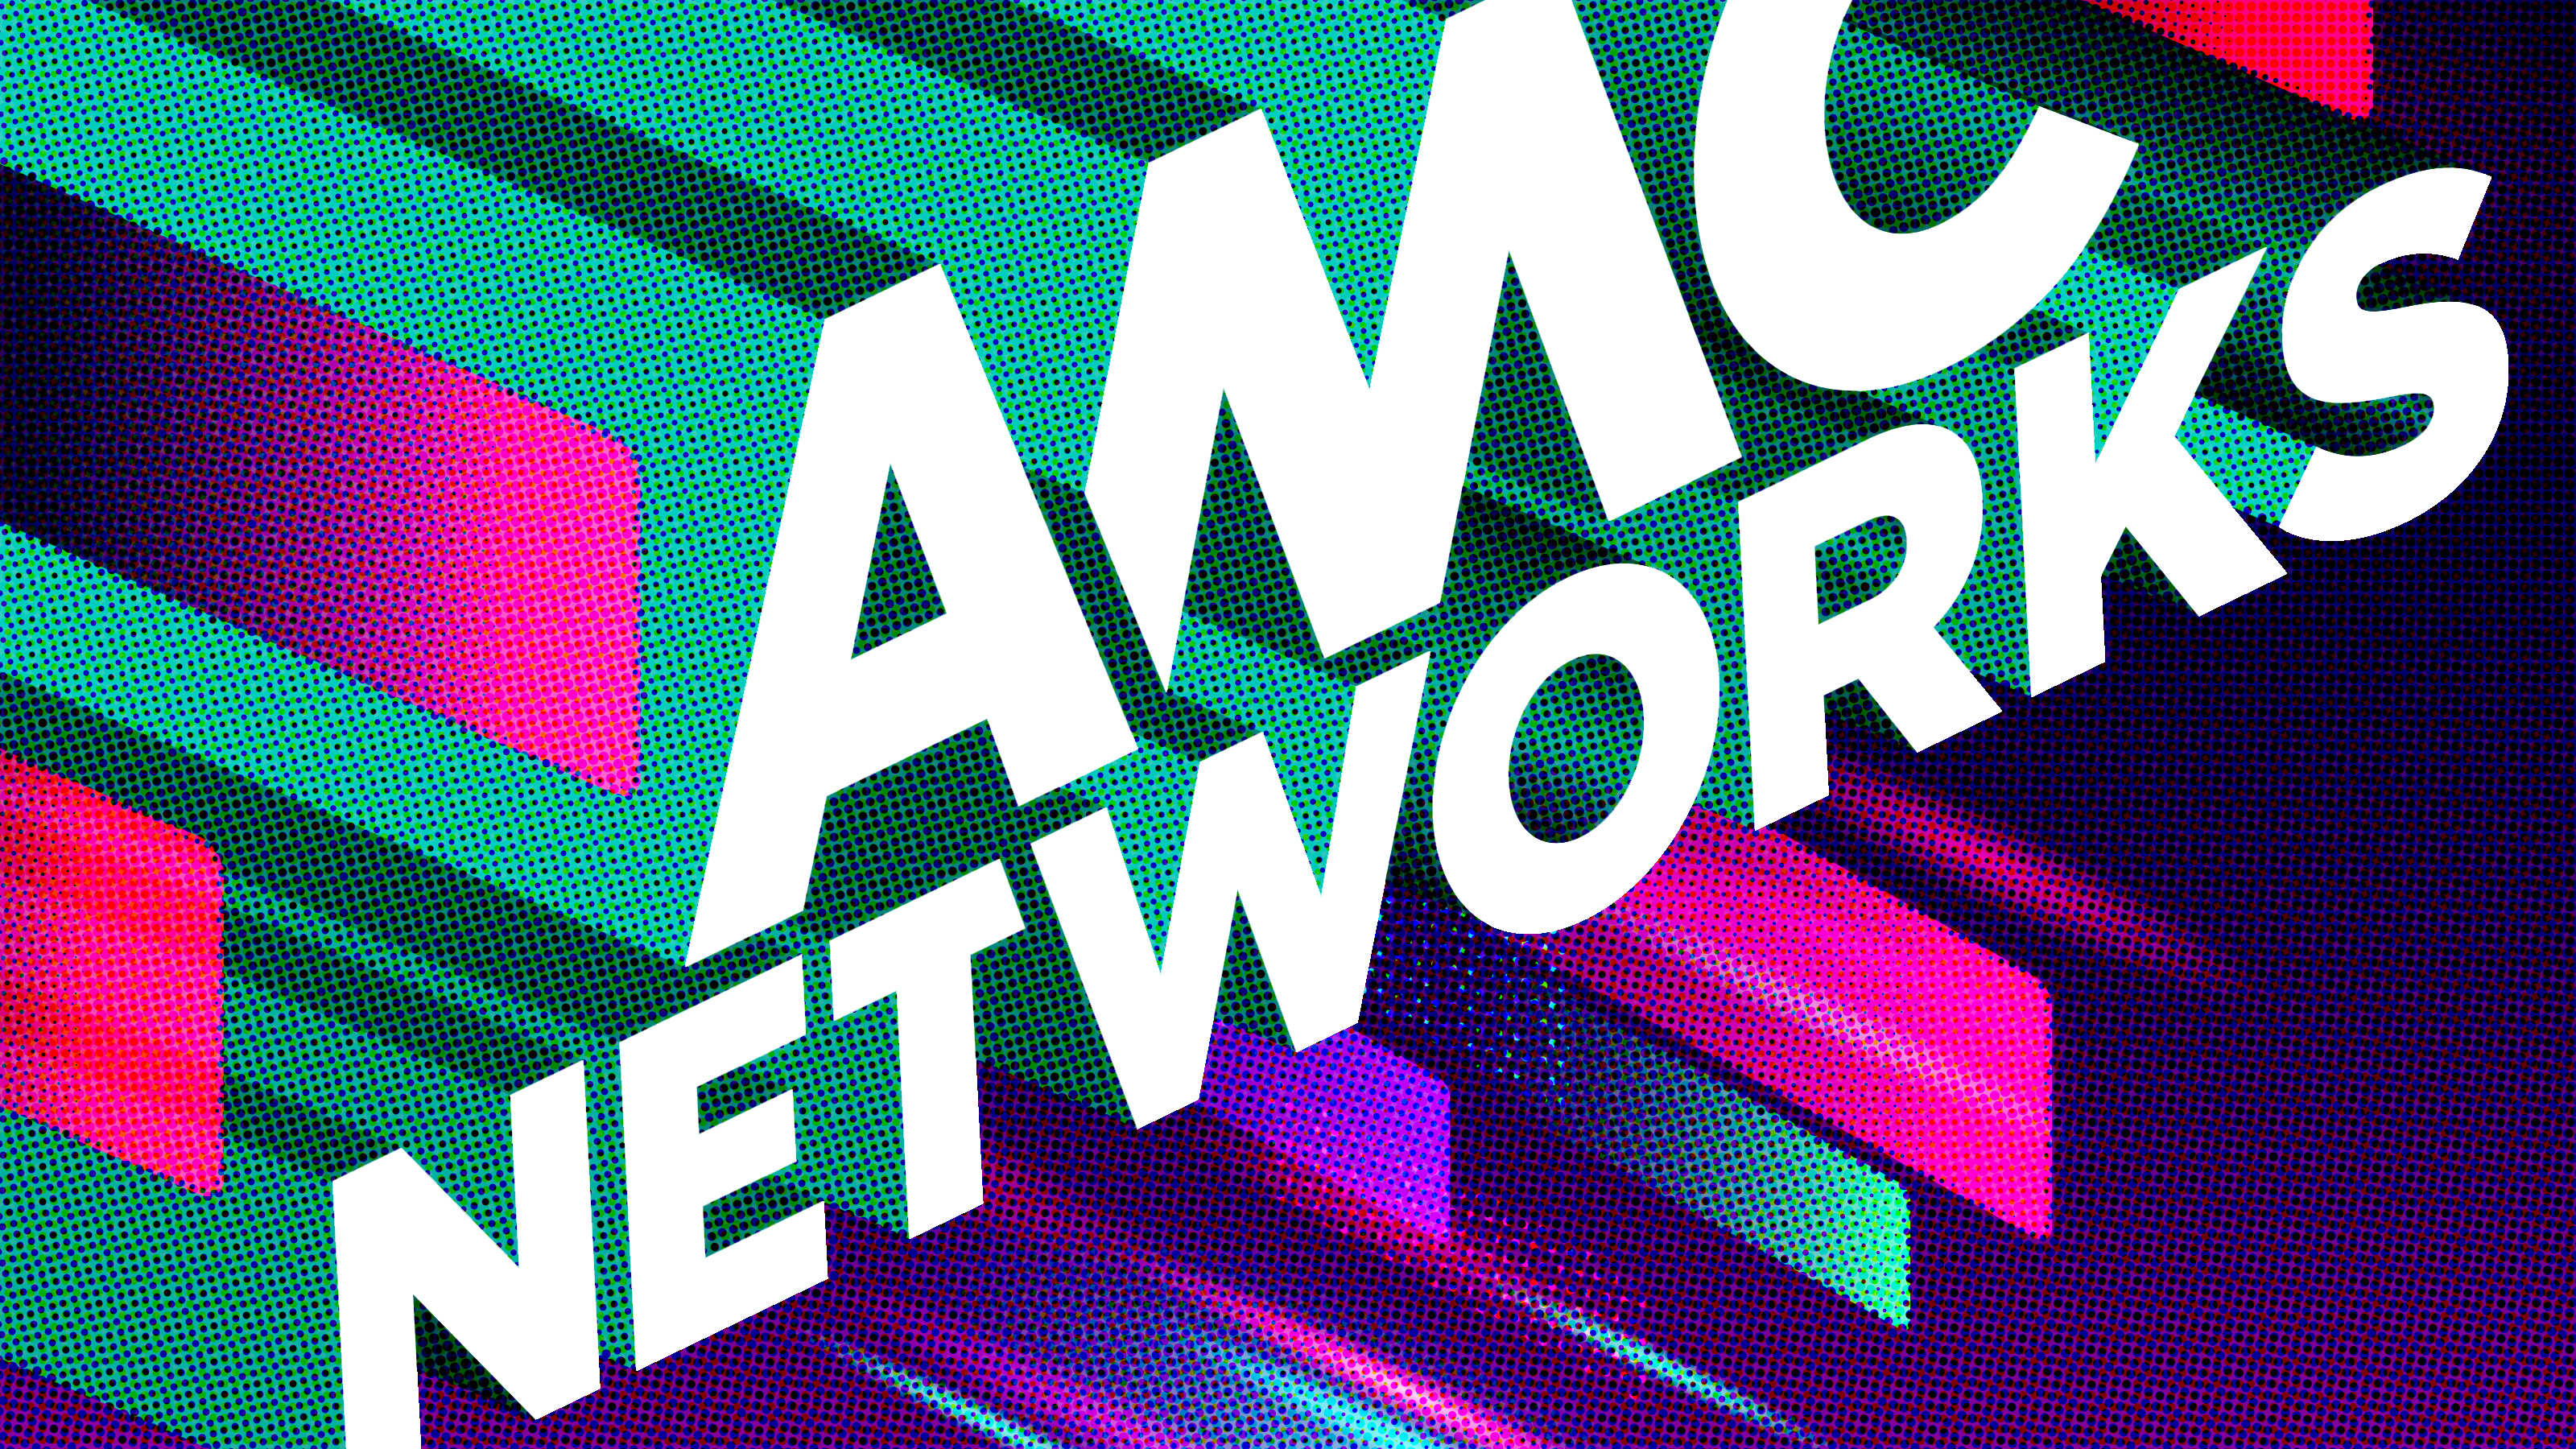 Amc Networks To Lay Off 10 Of U S Staff Following Strategic Shift Variety Get directions, reviews and information for amc 309 cinema 9 in north wales, pa. variety